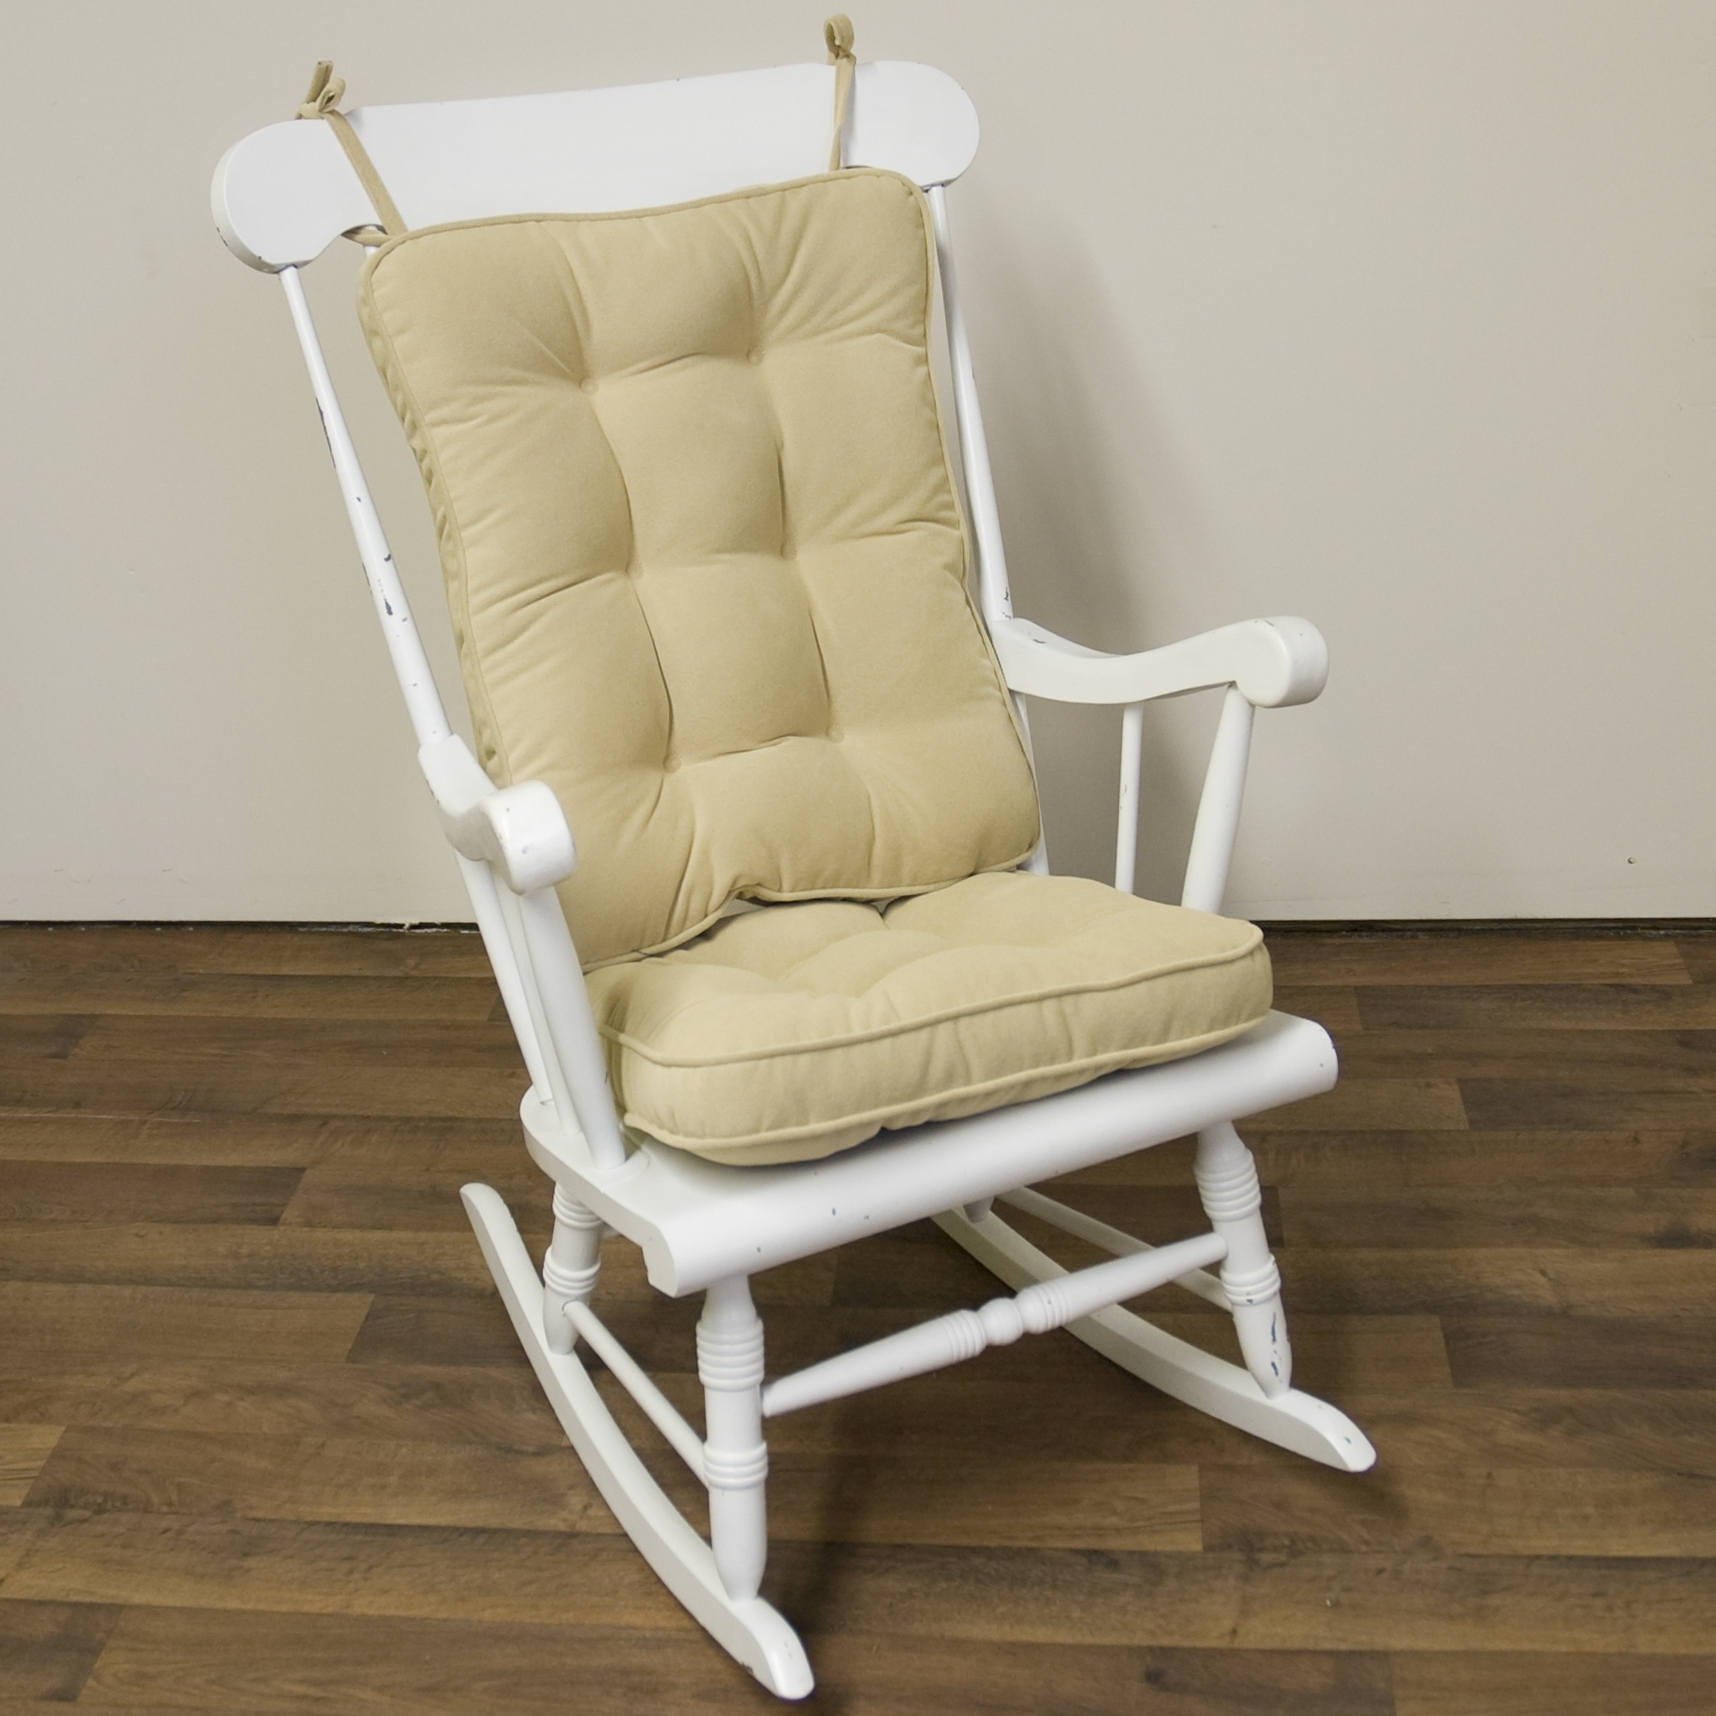 Preferred Best Lowes Wooden Rocking Chairs #27779 With Rocking Chairs At Lowes (View 12 of 20)